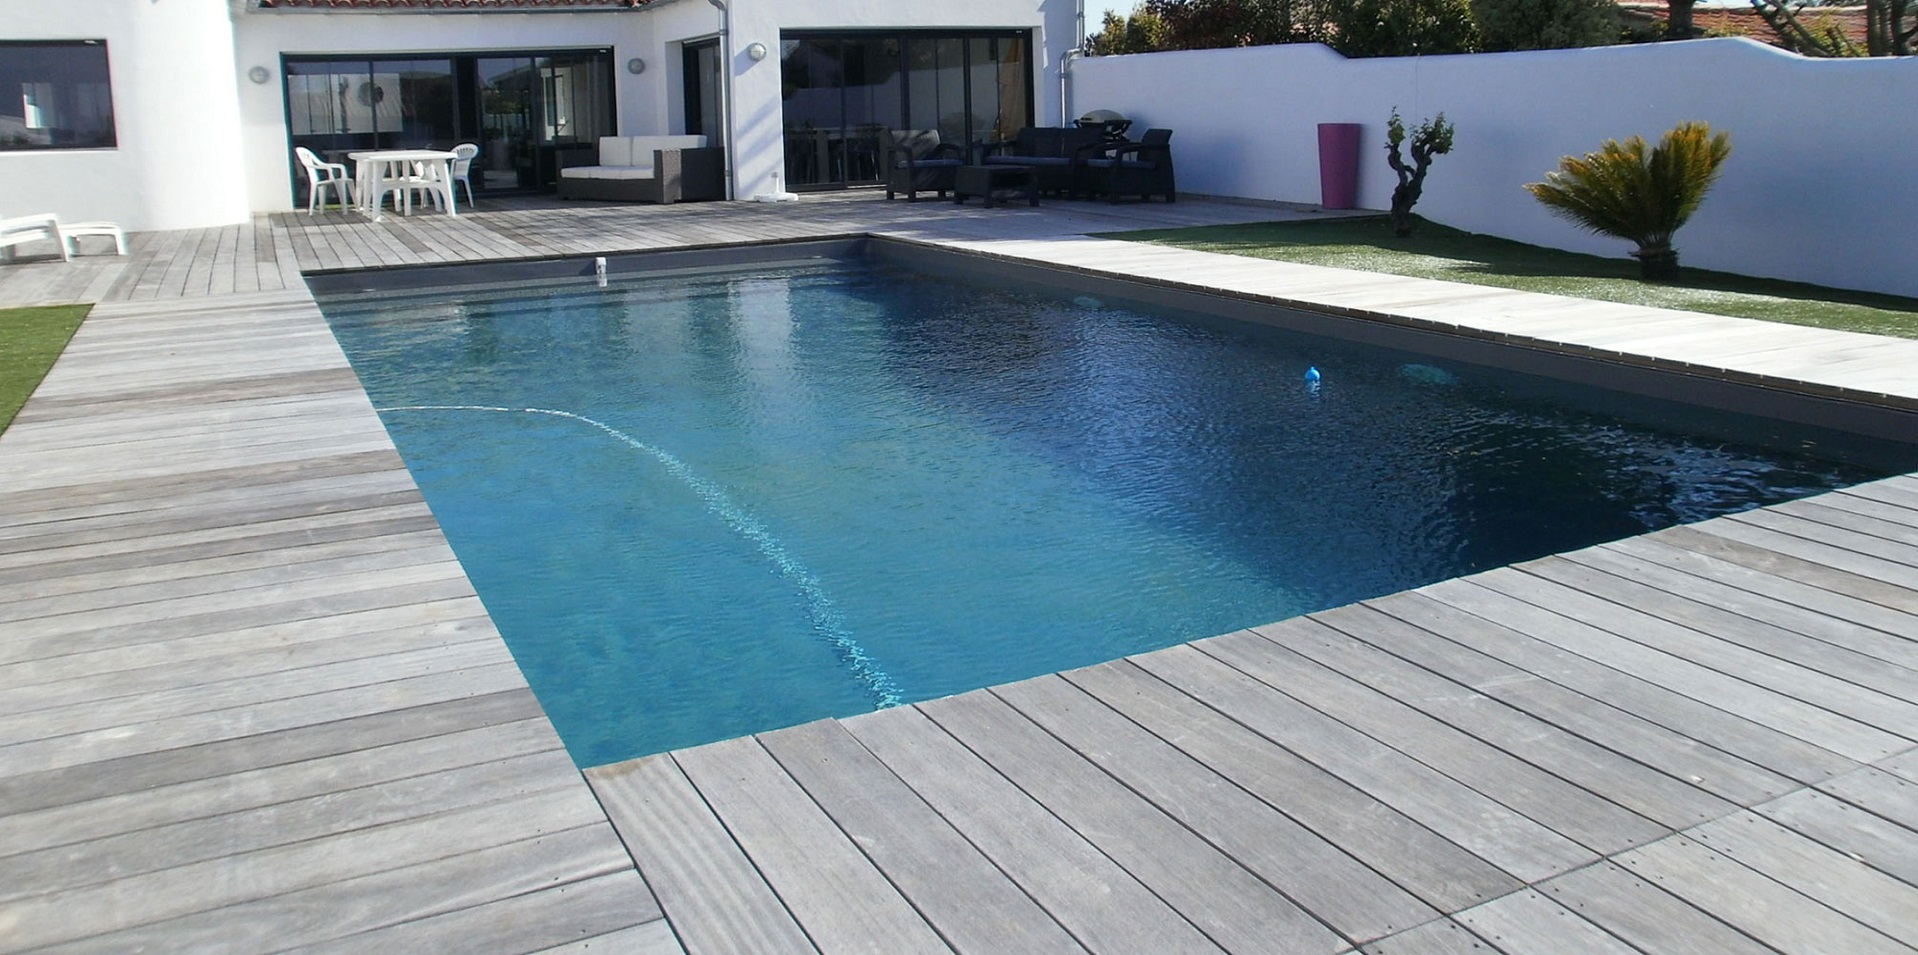 Installer une piscine autoportee piscine autoport e mode for Installer une piscine